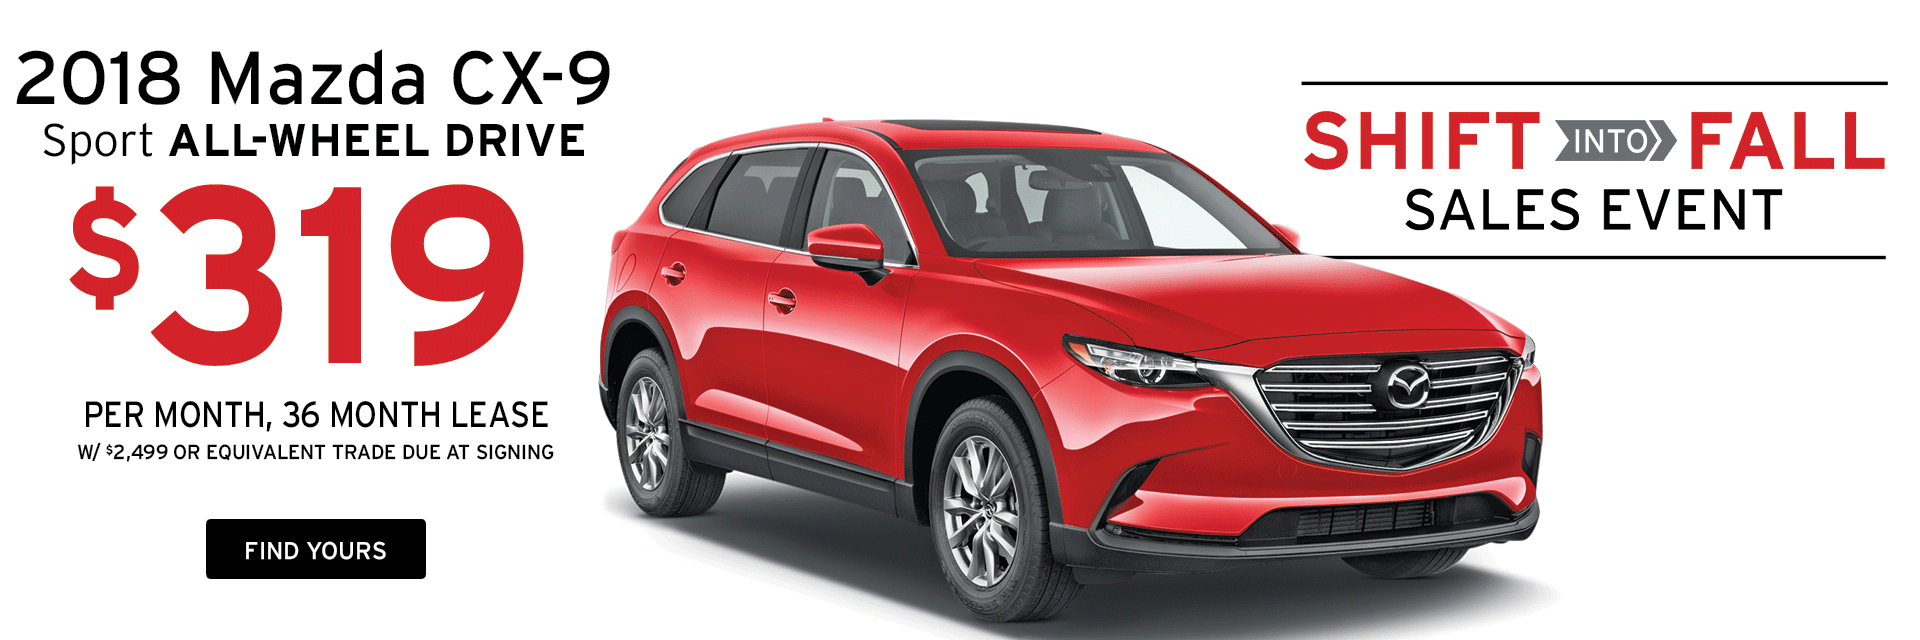 Lease a Mazda CX-9 at Holiday Mazda in Fond du Lac, WI